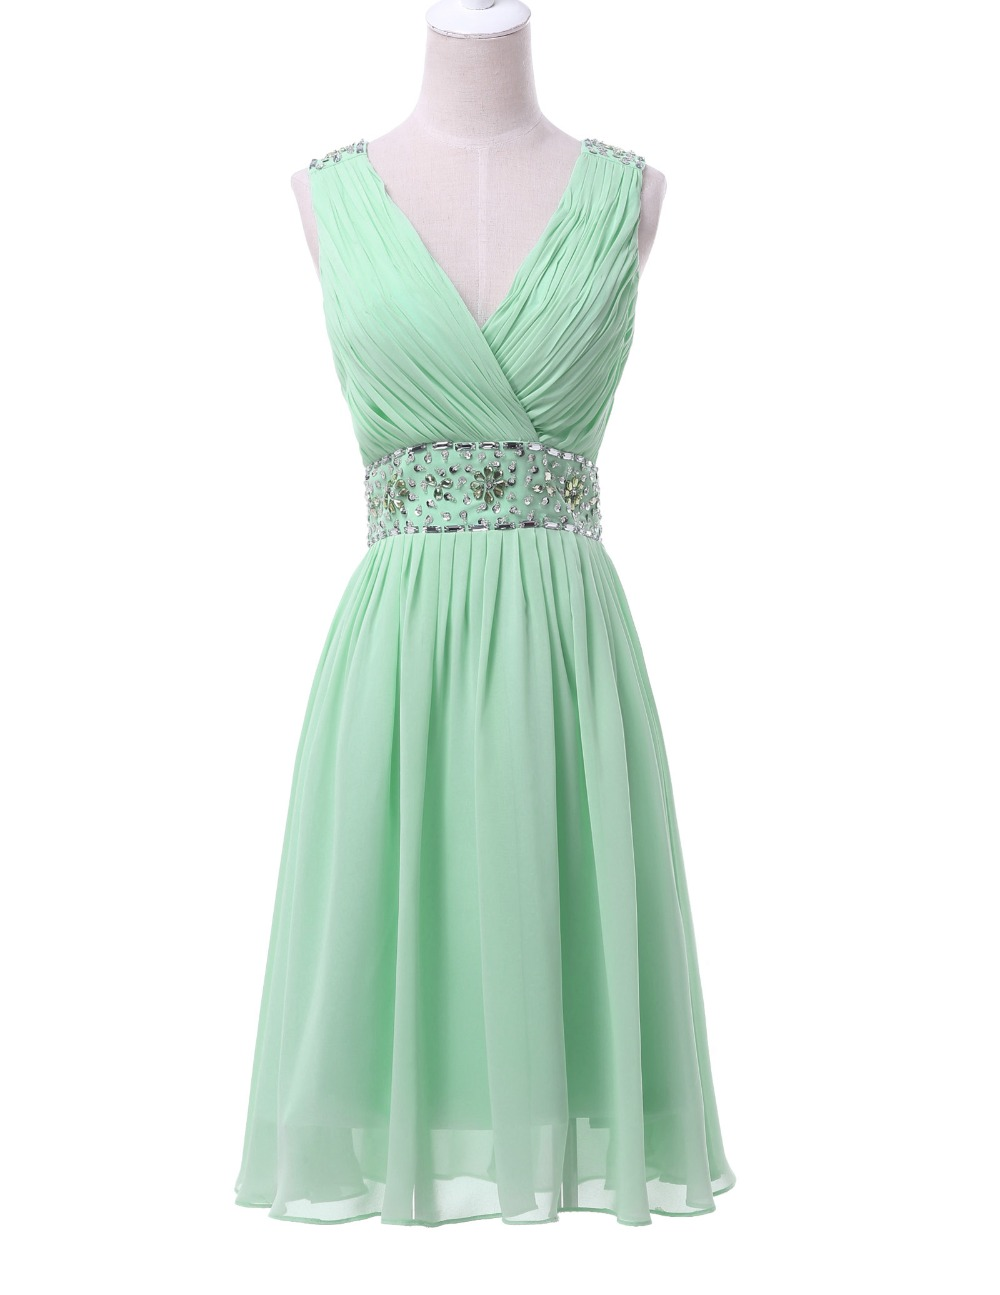 Grace karin real picture chiffon mint green short bridesmaid dresses grace karin real picture chiffon mint green short bridesmaid dresses knee length v neck prom party dress beaded and sequins in bridesmaid dresses from ombrellifo Gallery